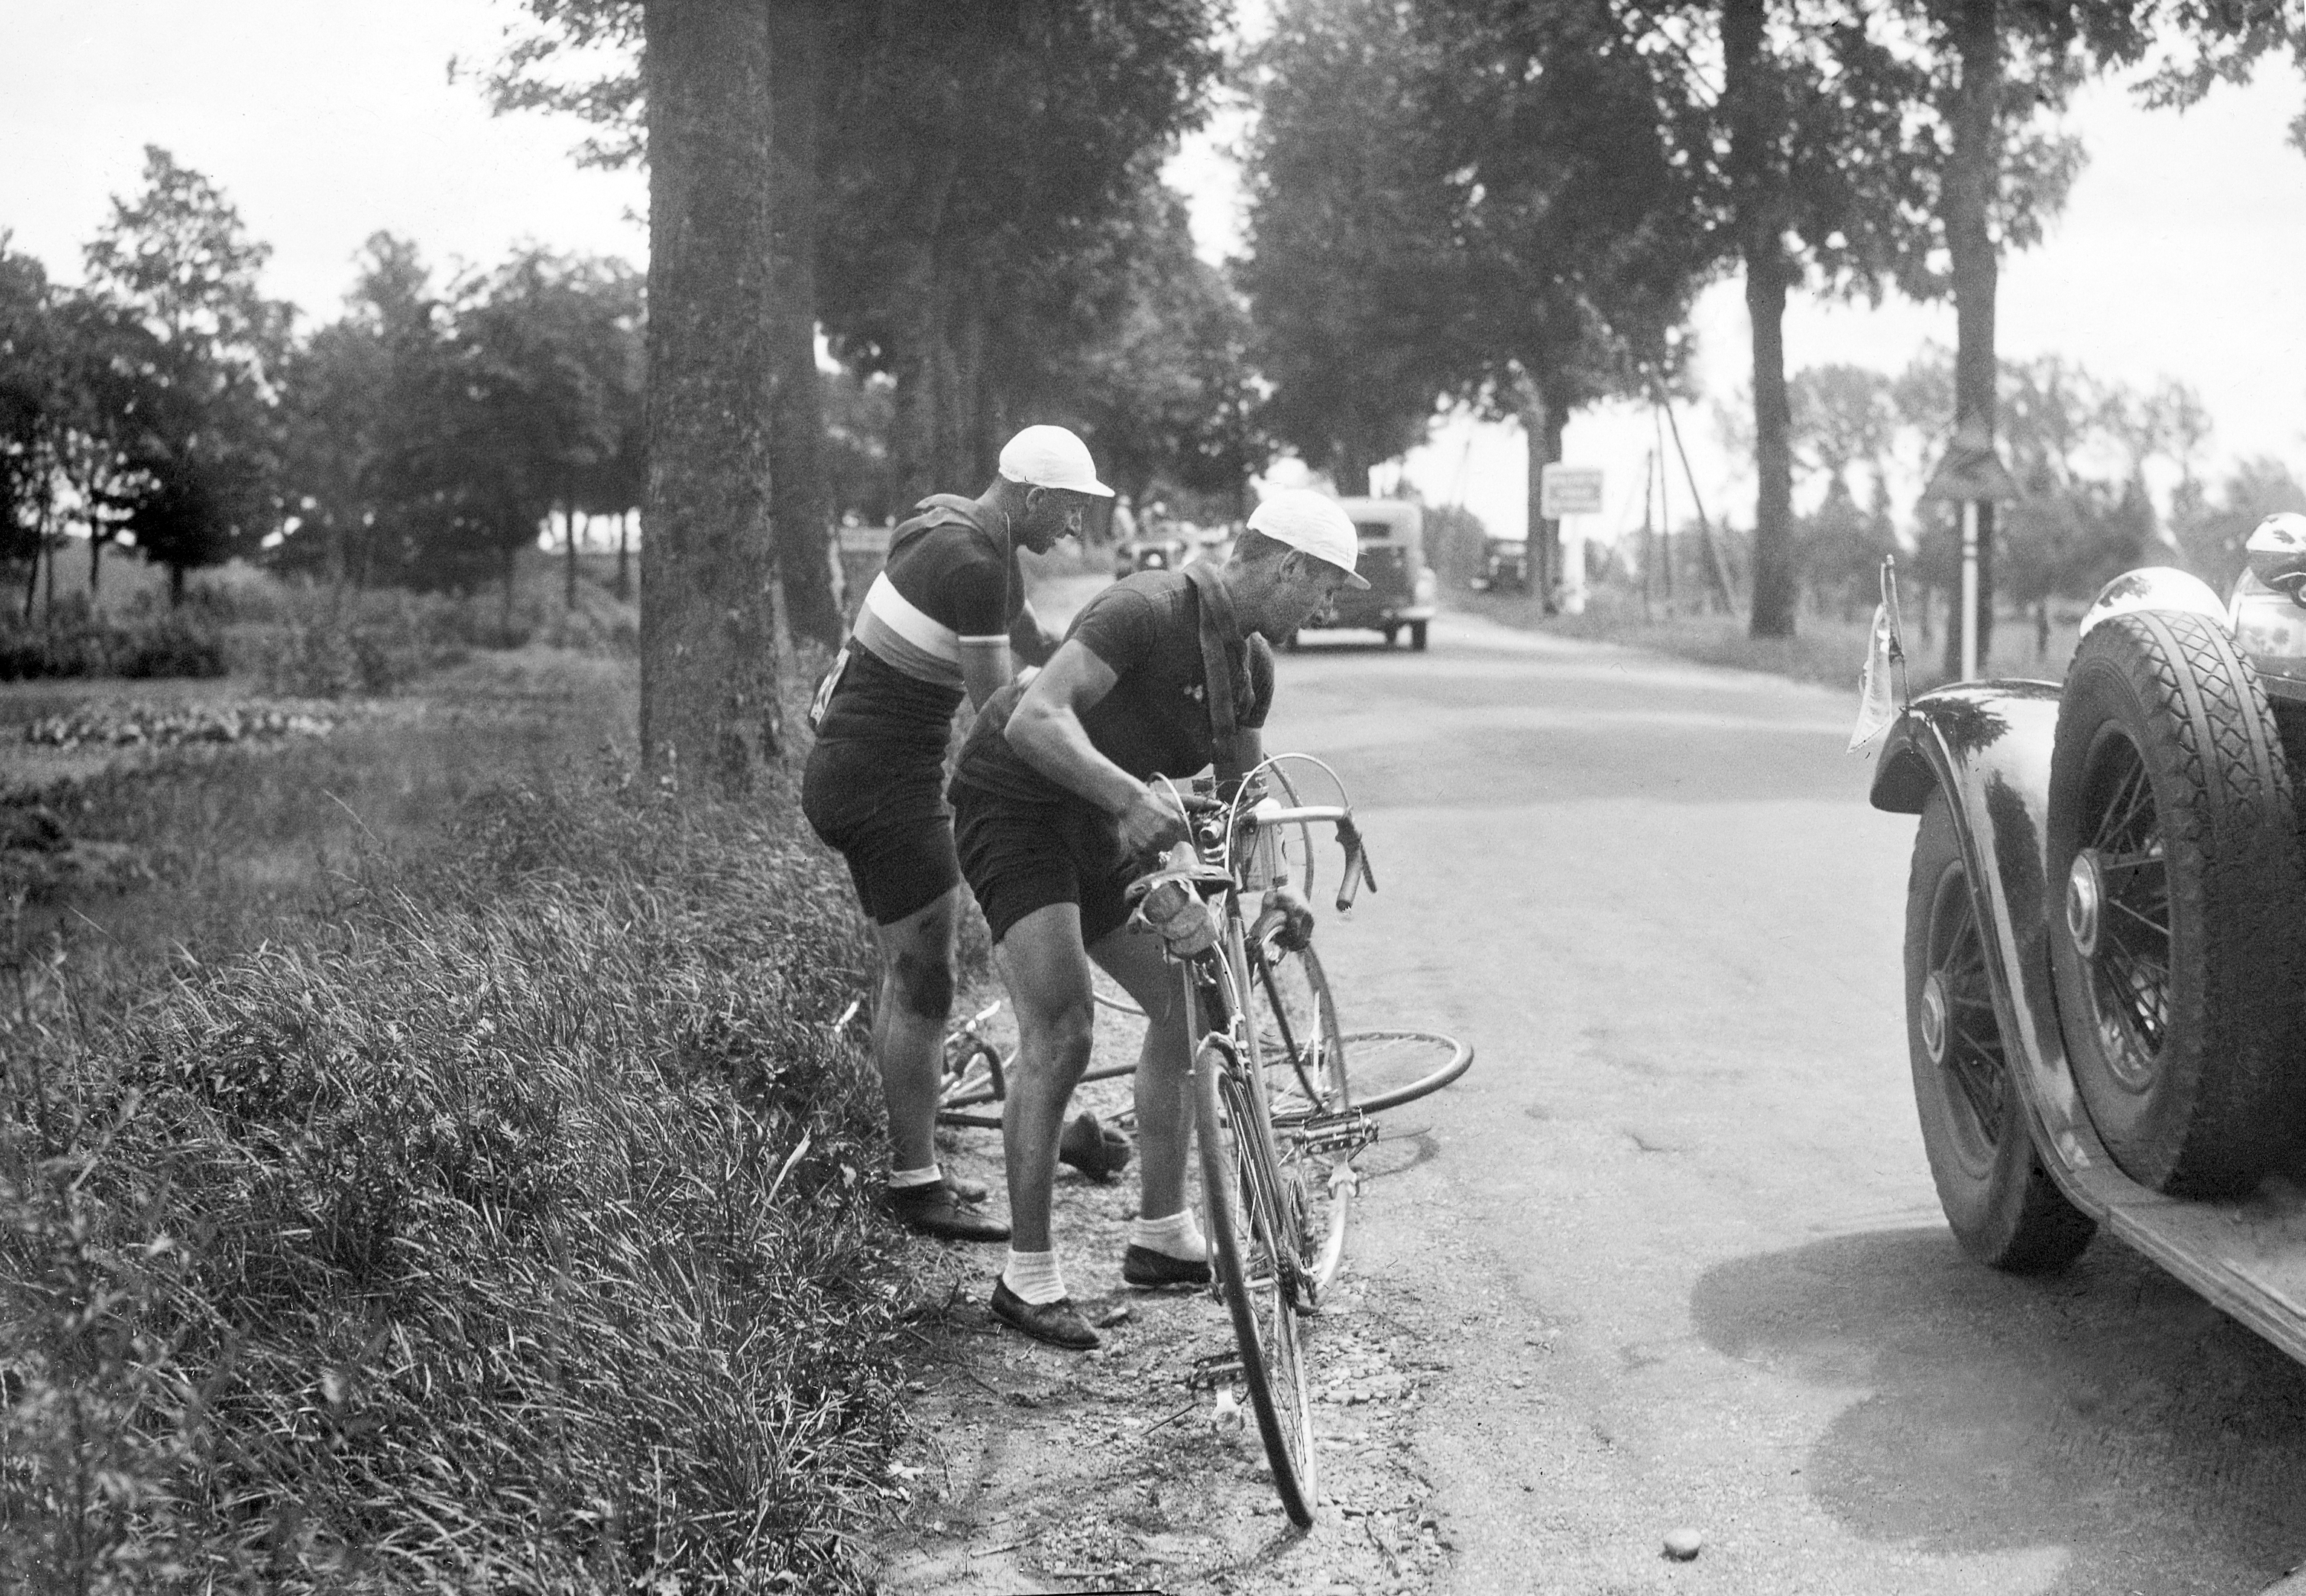 Racing cyclist Arsene Mersch of Luxembourg changes his wheel with Josy Krauss one's after a puncture during the fourth stage of the Tour de France, on July 10, 1934.